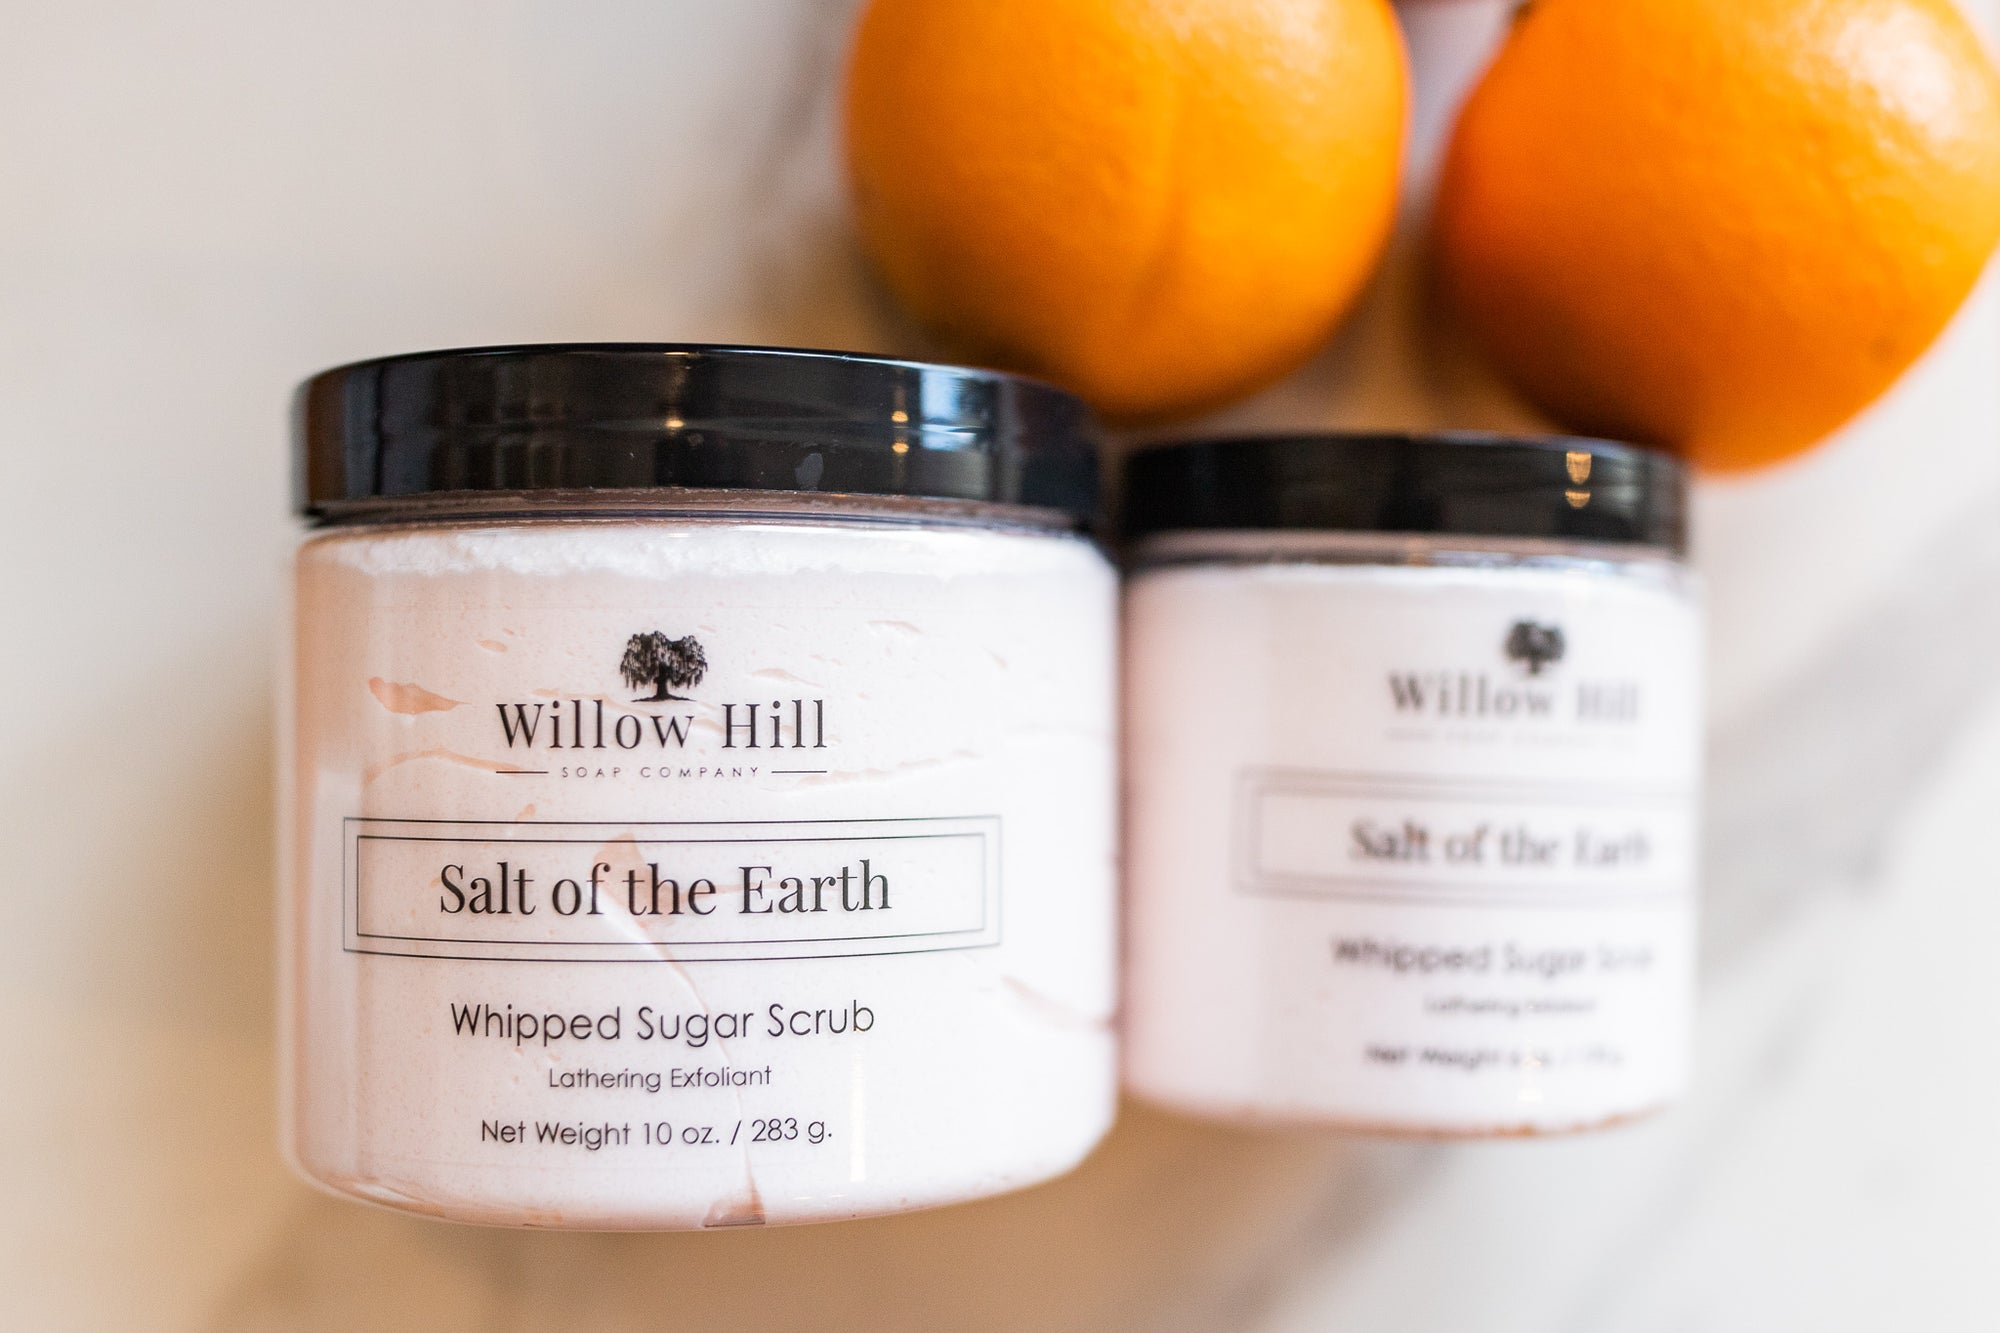 Salt of the Earth Whipped Sugar Scrub